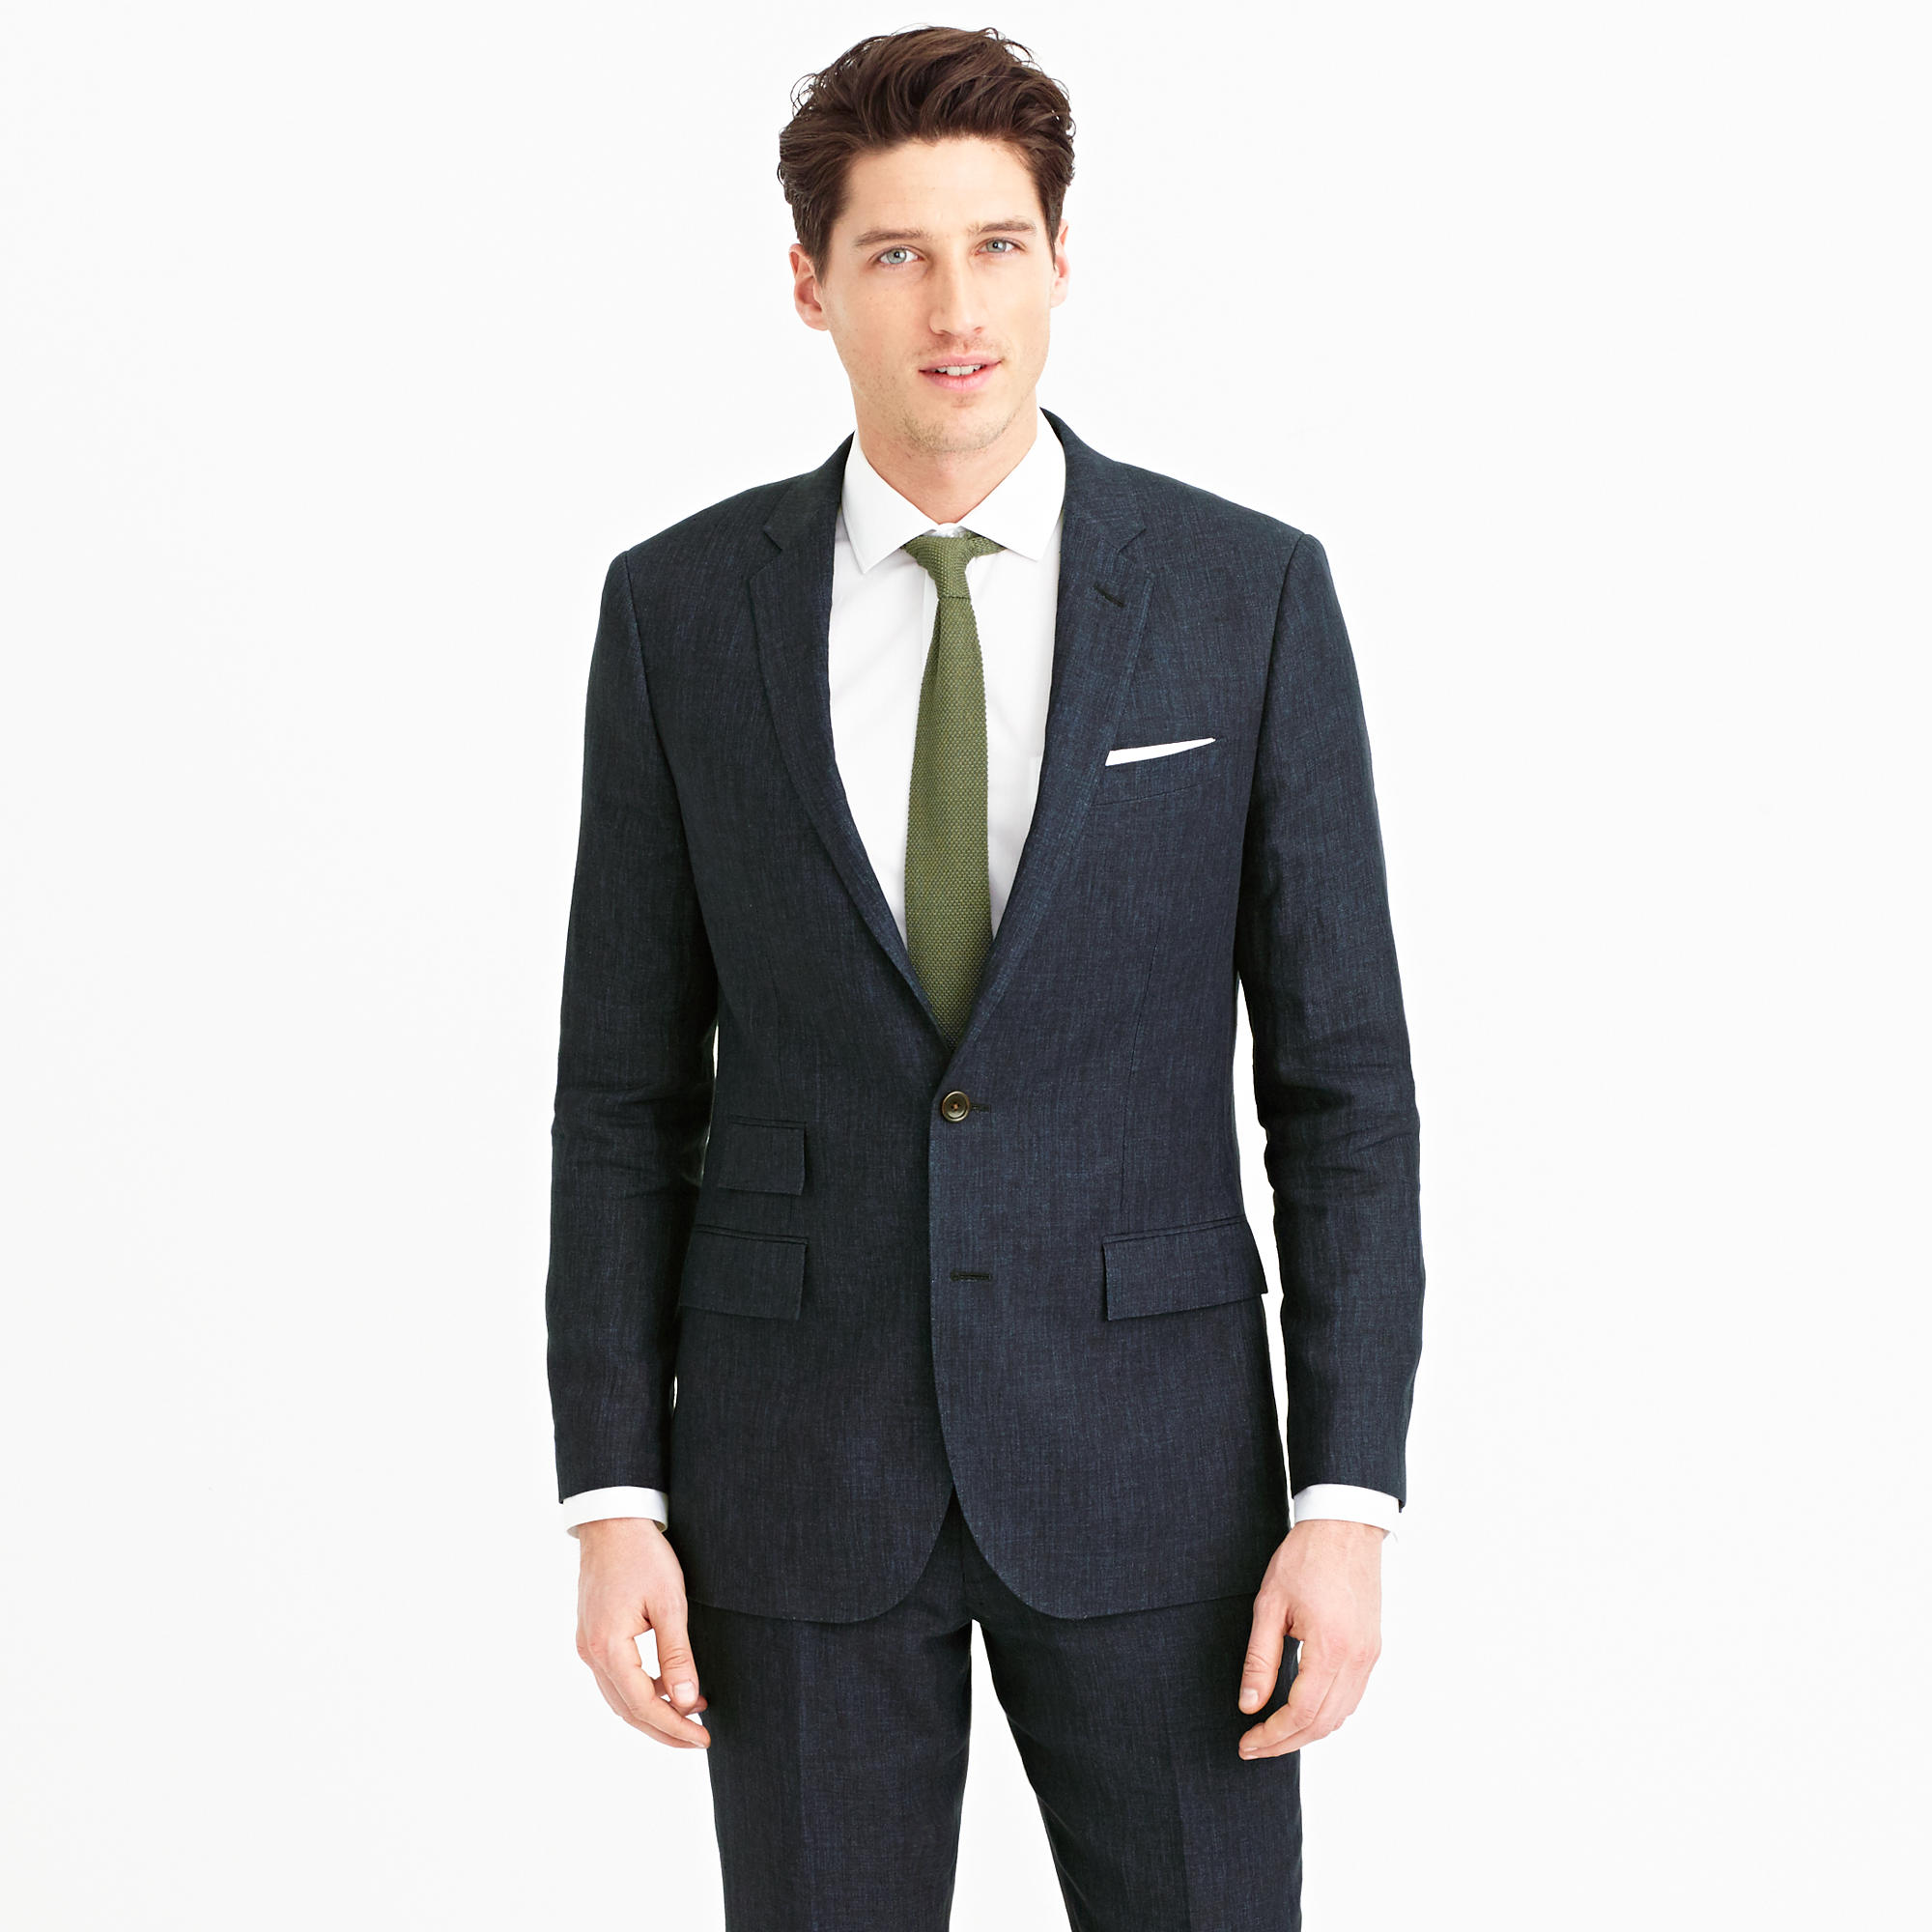 How does this look far a wedding suit for my June wedding